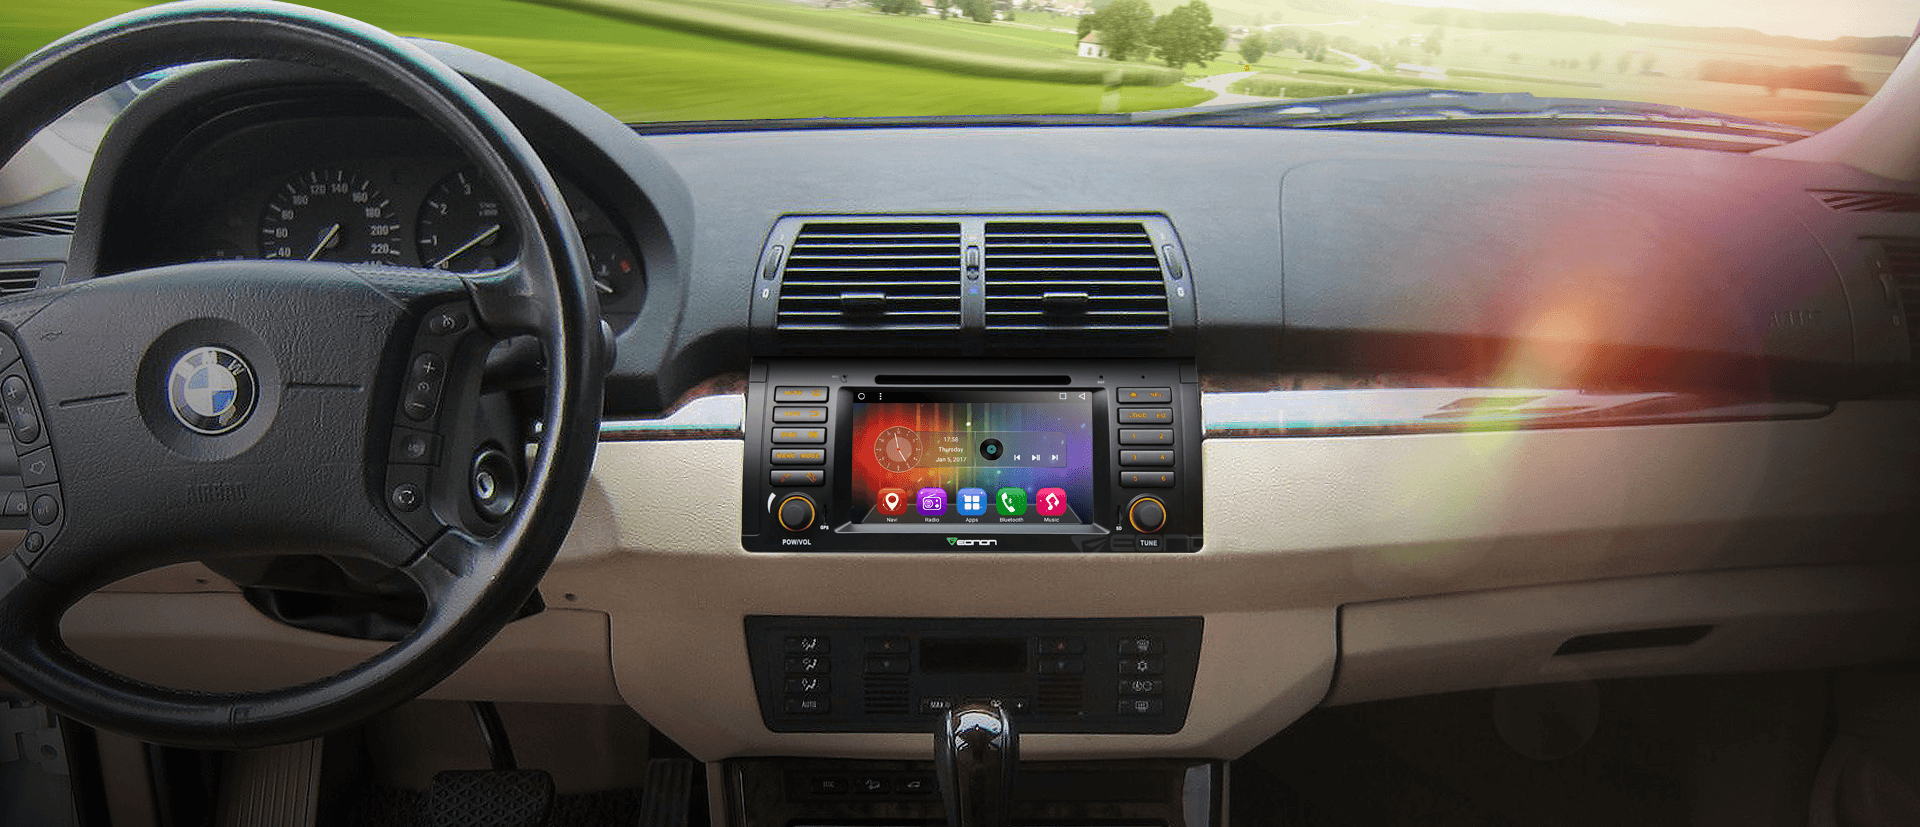 bmw e53 android 6 0 marshmallow 7 multimedia car dvd gps with mutual control easy connection free. Black Bedroom Furniture Sets. Home Design Ideas